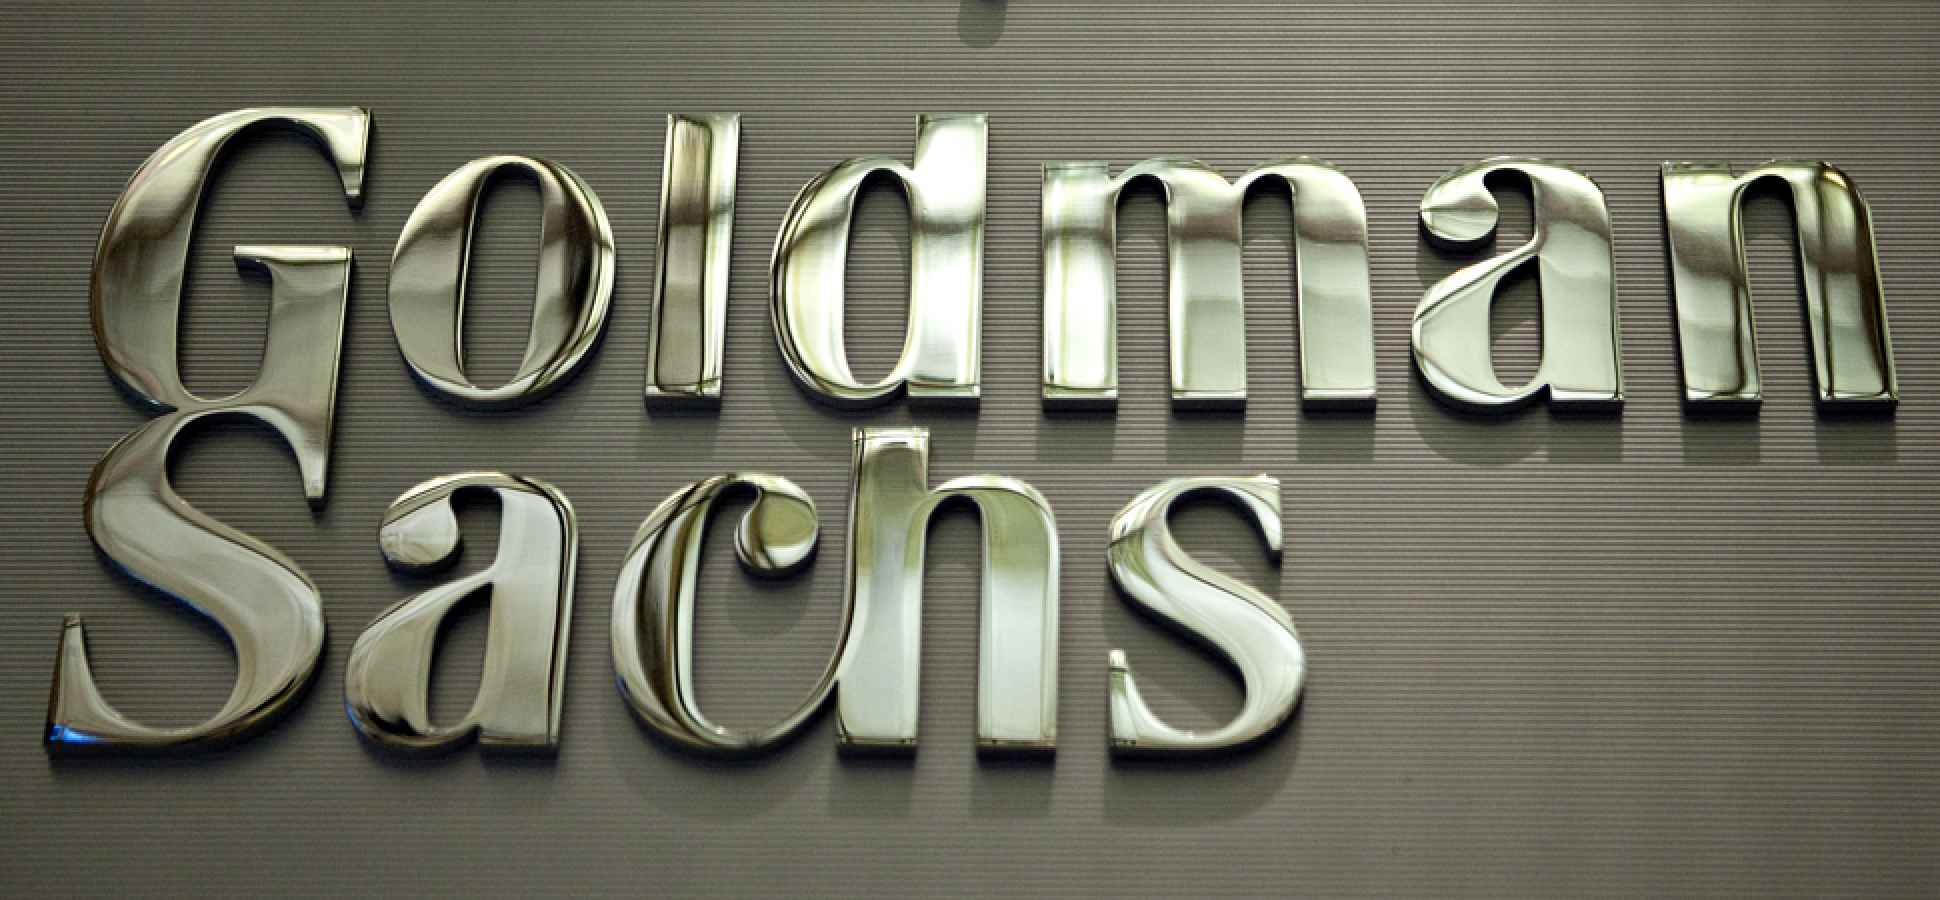 5 Things Goldman Sachs Looks for in a Company Before Investing